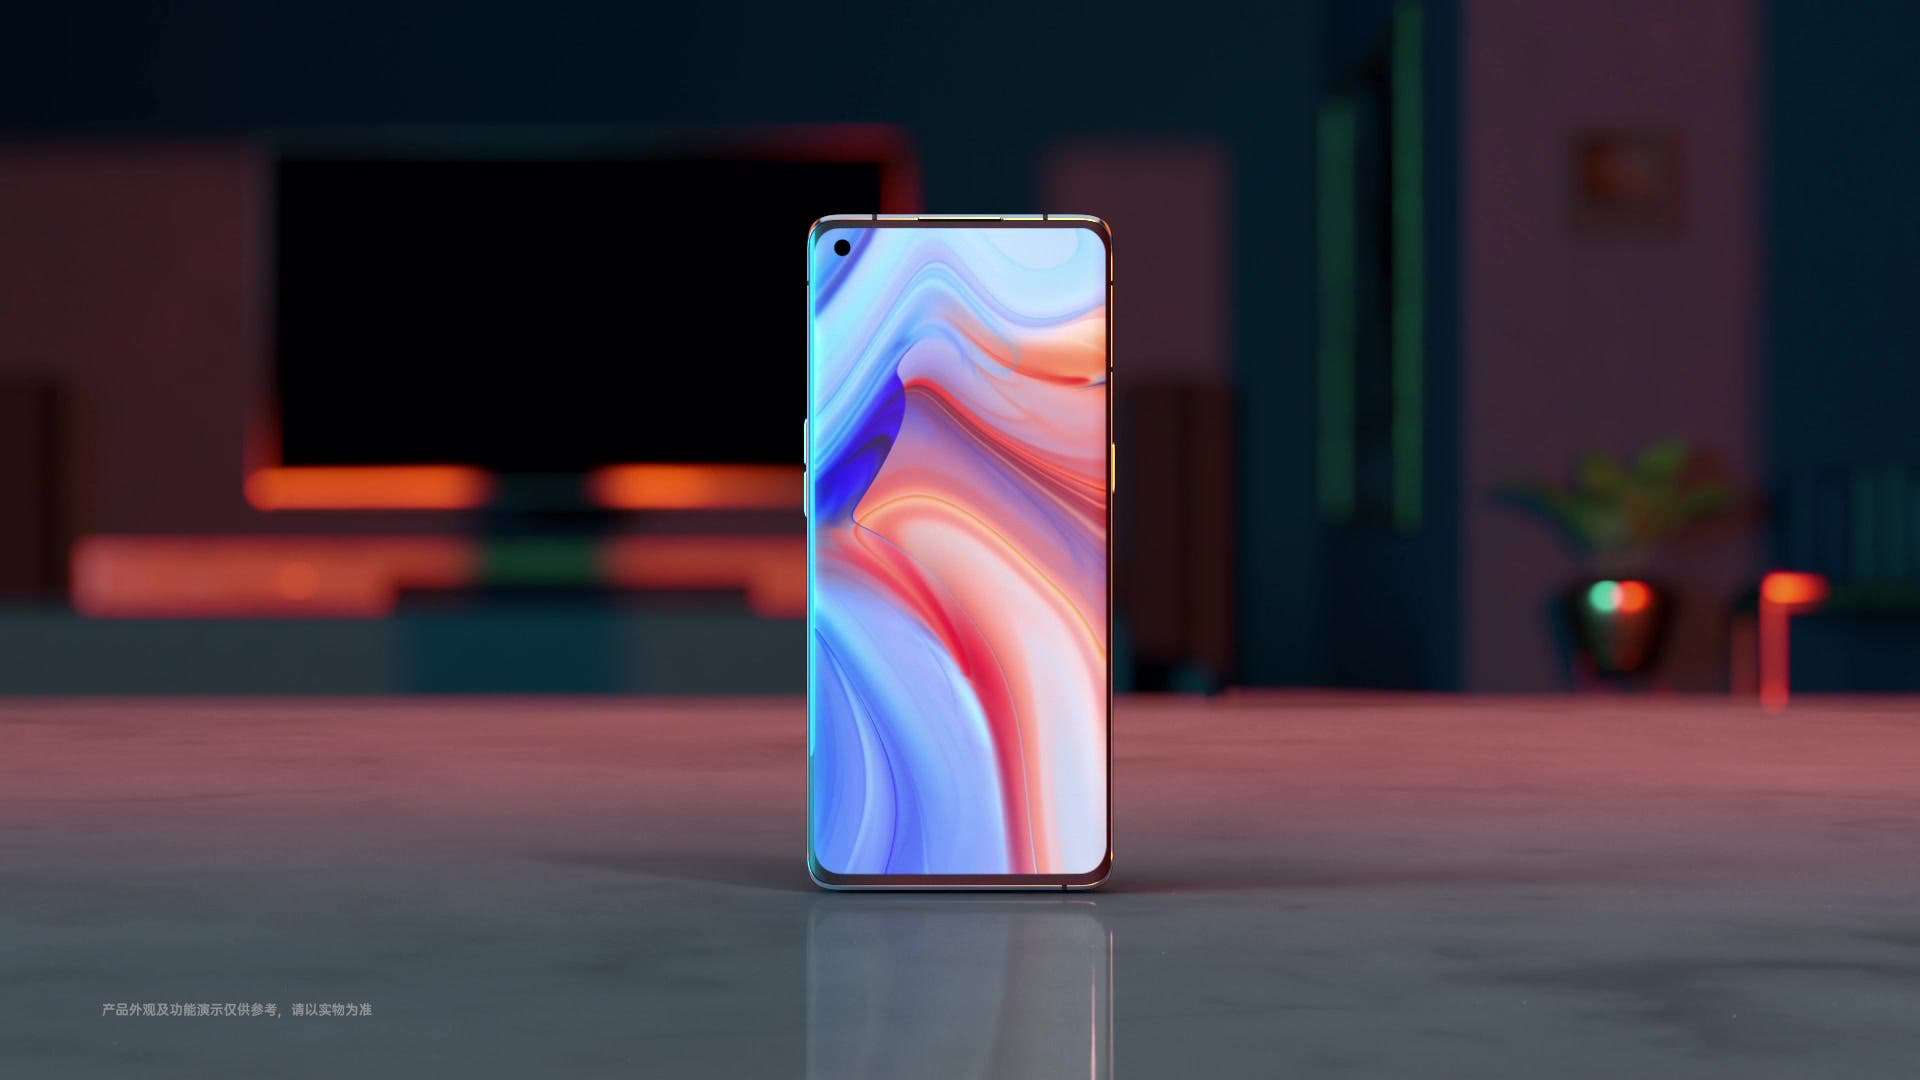 The global variant of Oppo Reno 4 Pro differs from the Chinese variant.